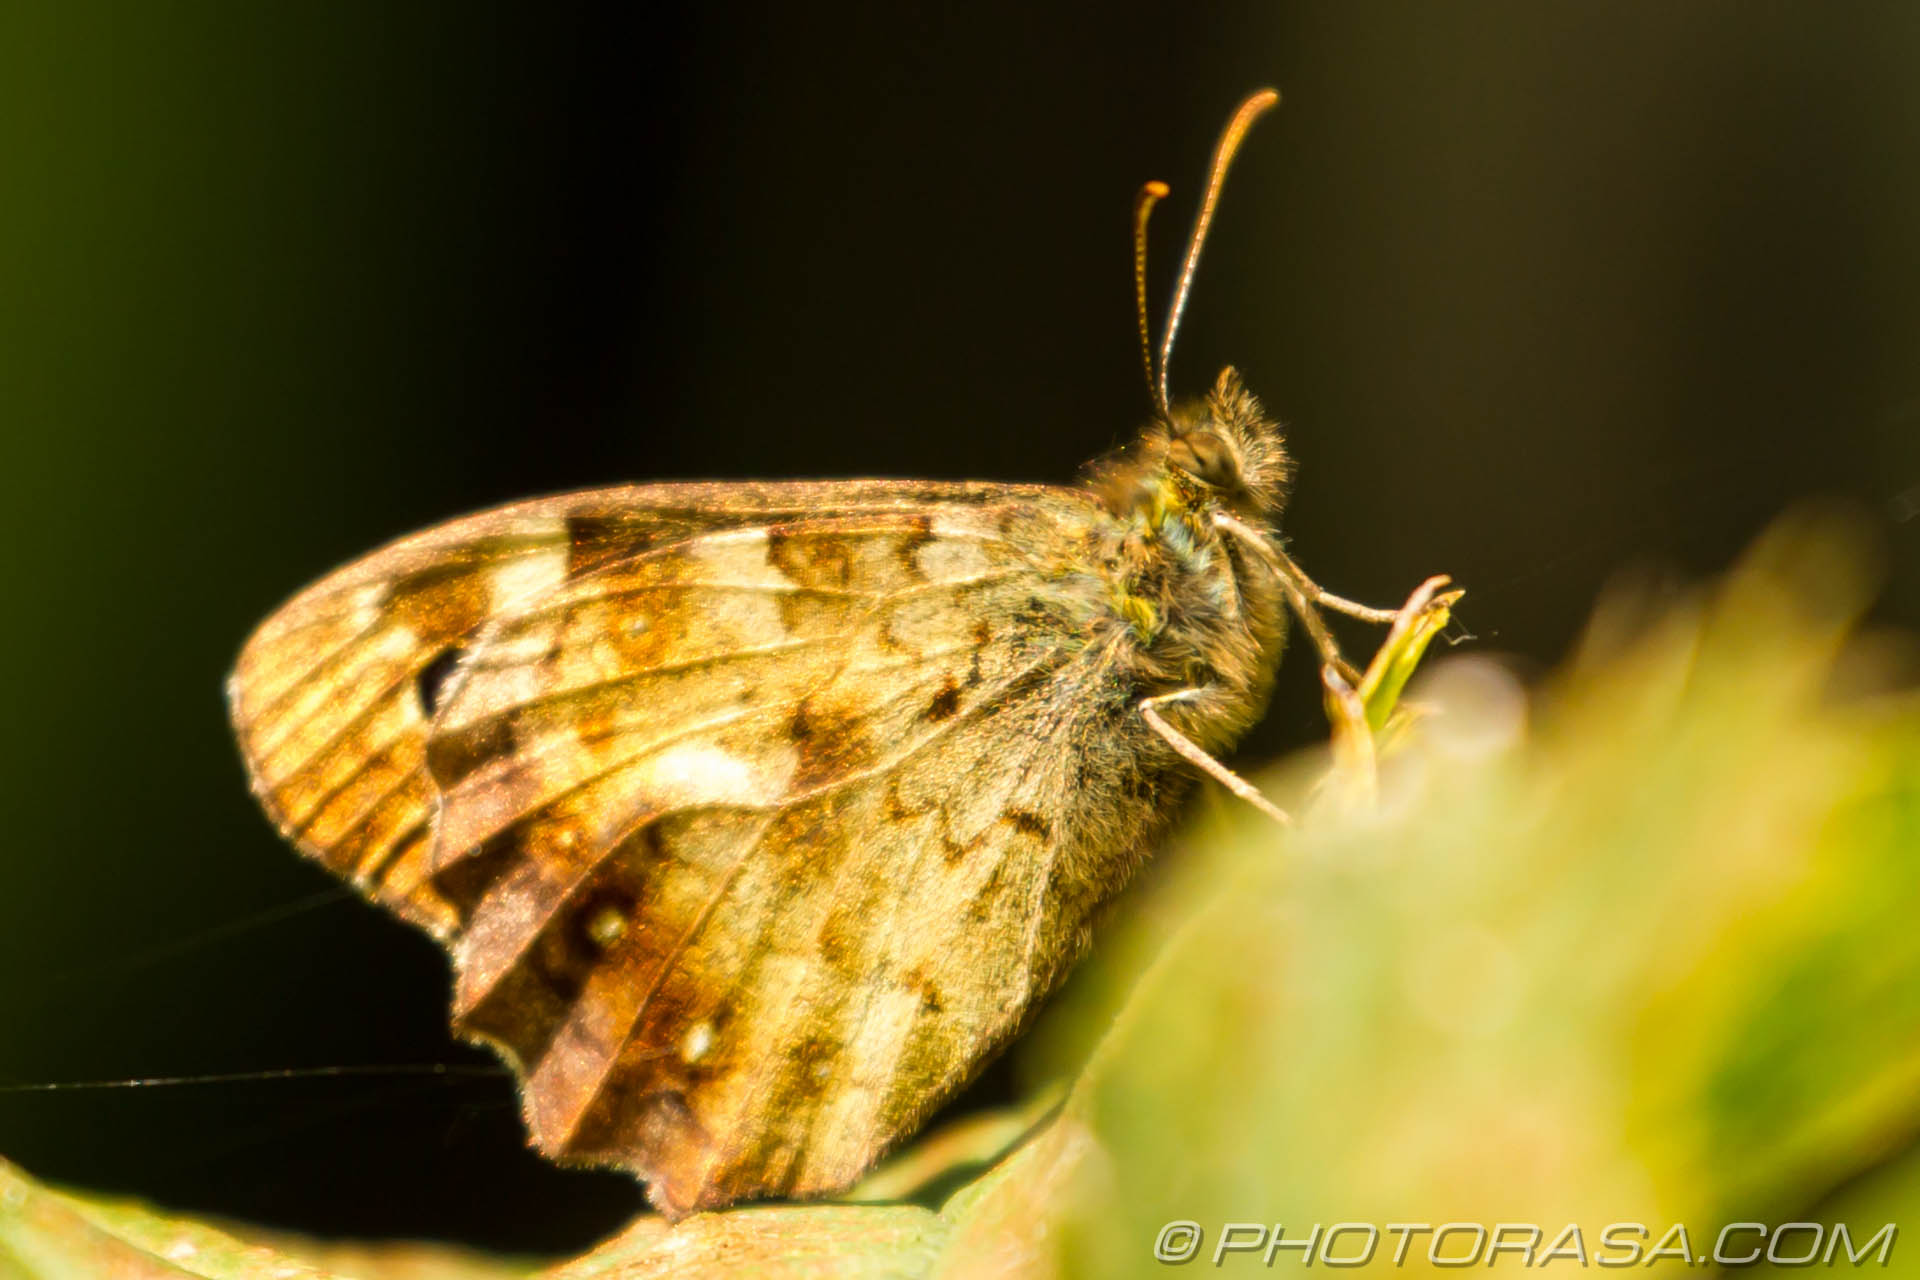 http://photorasa.com/speckled-wood-butterfly/speakled-wood-underside/